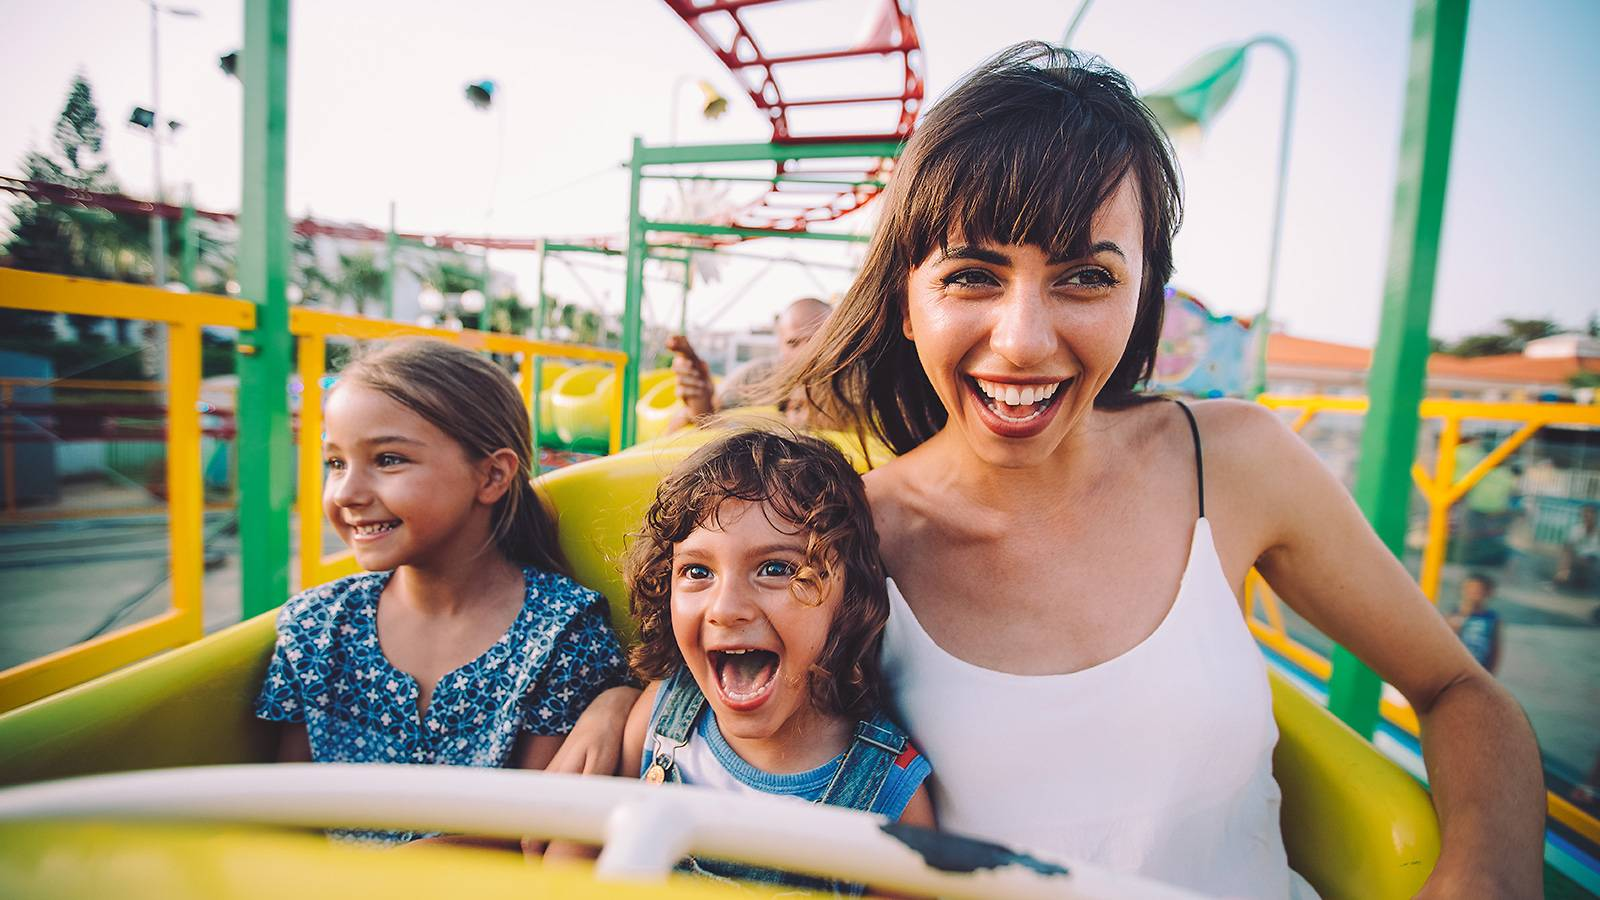 Kids-16-theme-park-hacks-for-the-whole-family-MAIN